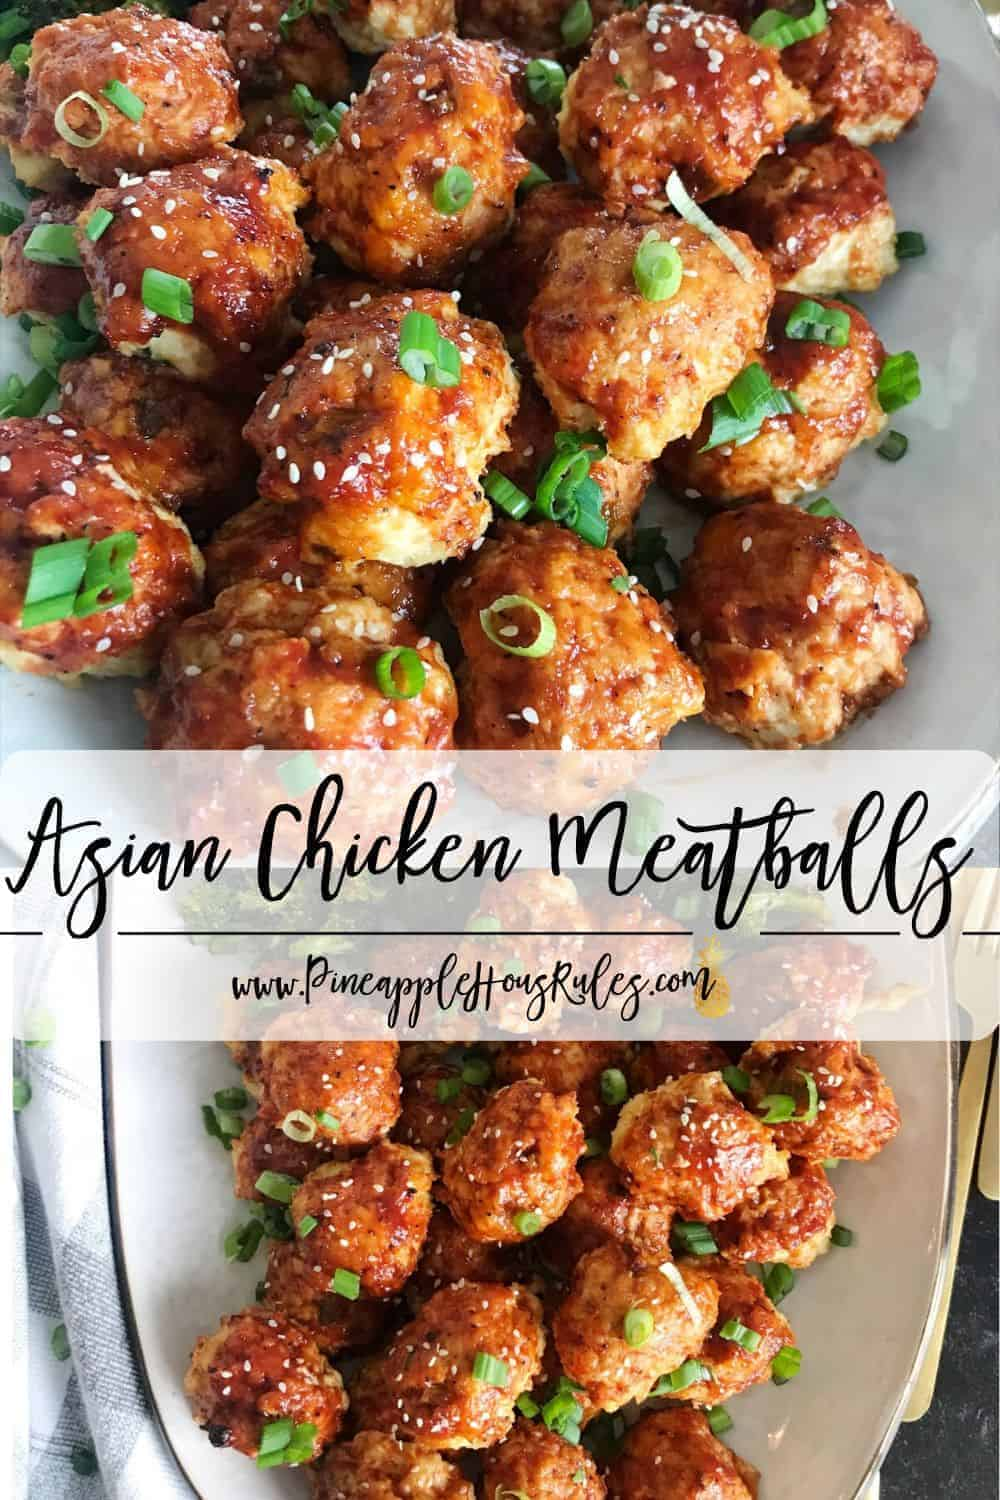 Asian-Chicken-Meatballs-1